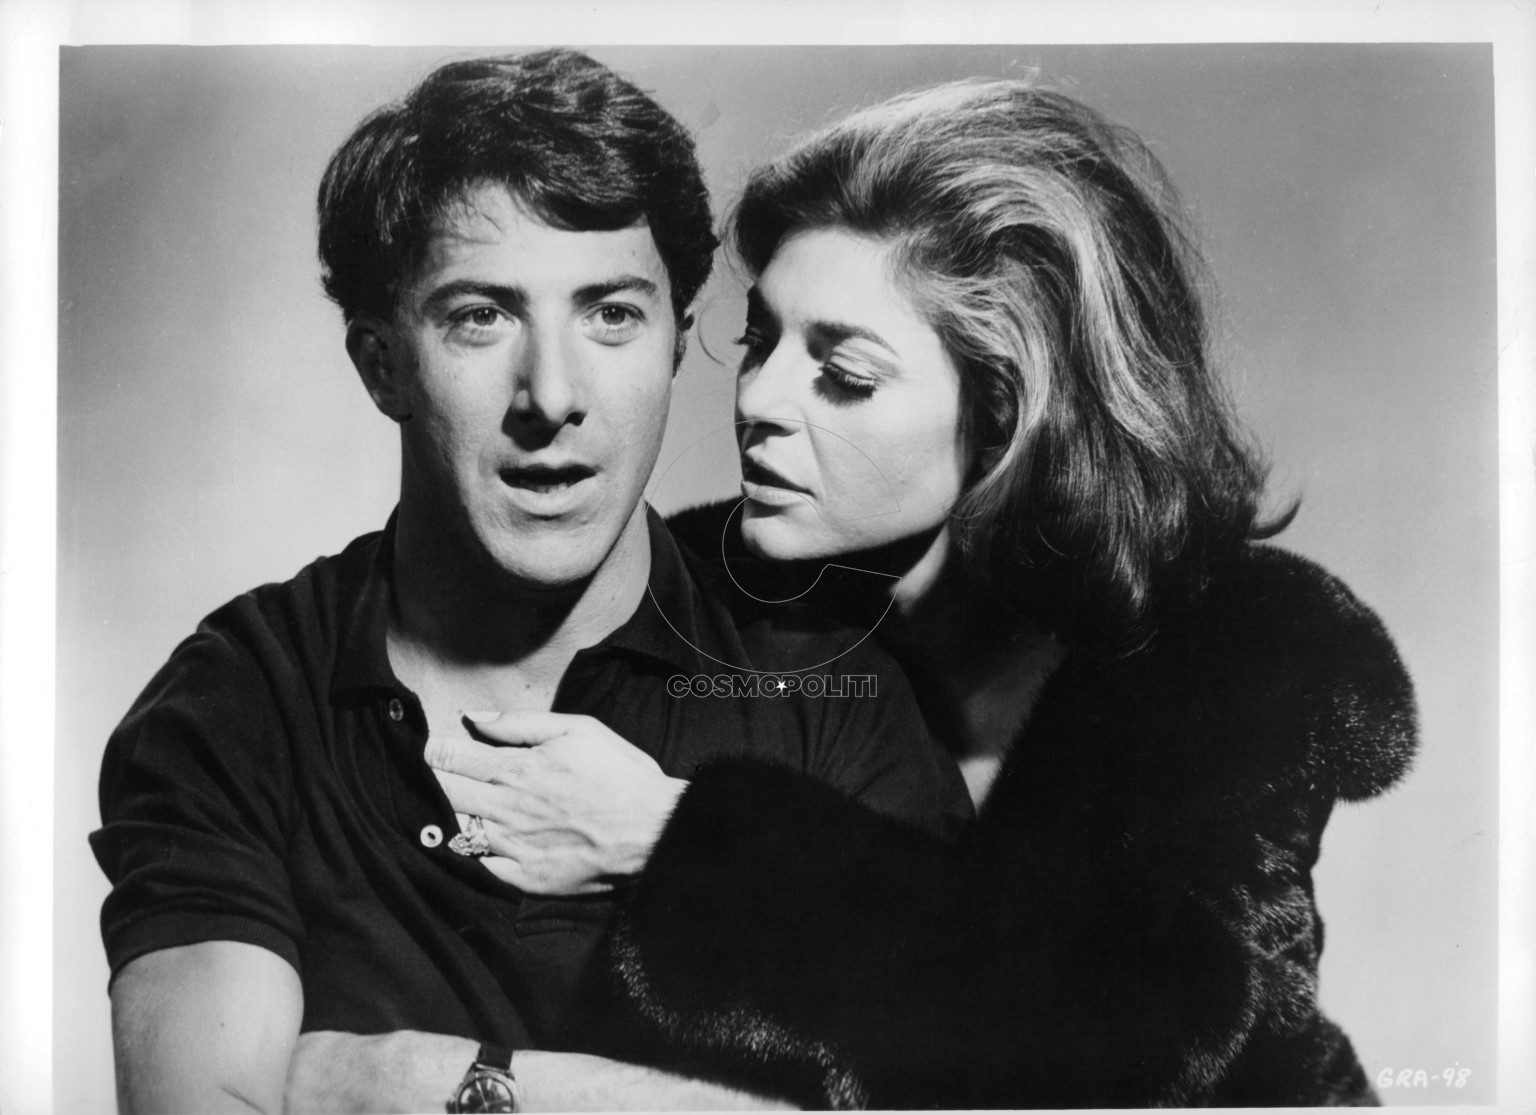 Anne Bancroft reaches into the shirt of Dustin Hoffman in a publicity portrait for the film 'The Graduate', 1967. (Photo by Embassy Pictures/Getty Images)